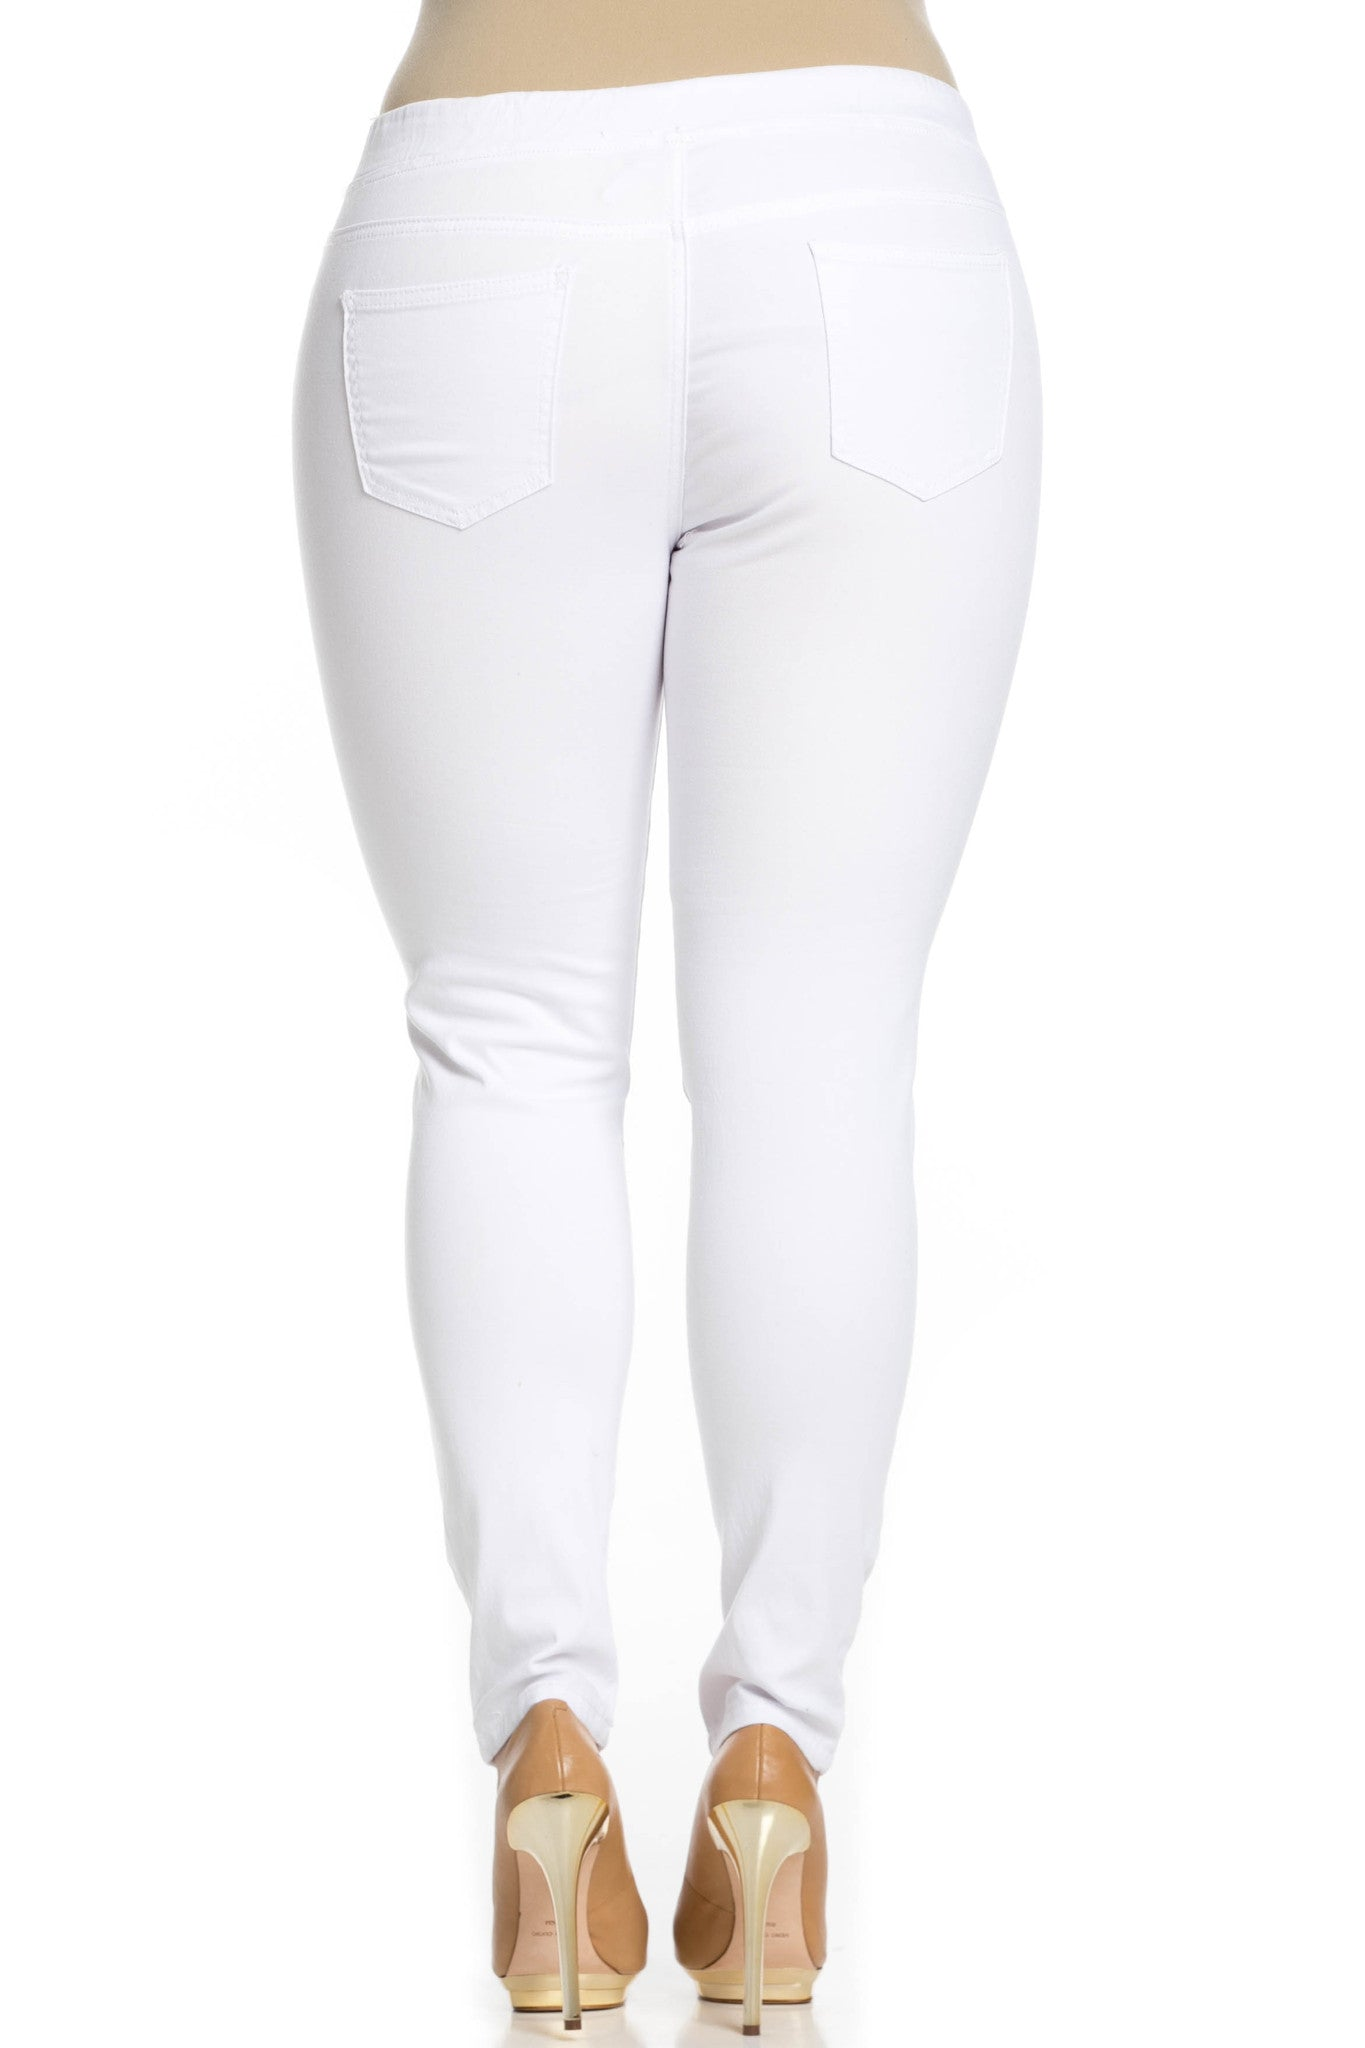 Distressed Skinny White Jogger Jeans - Pants - My Yuccie - 11